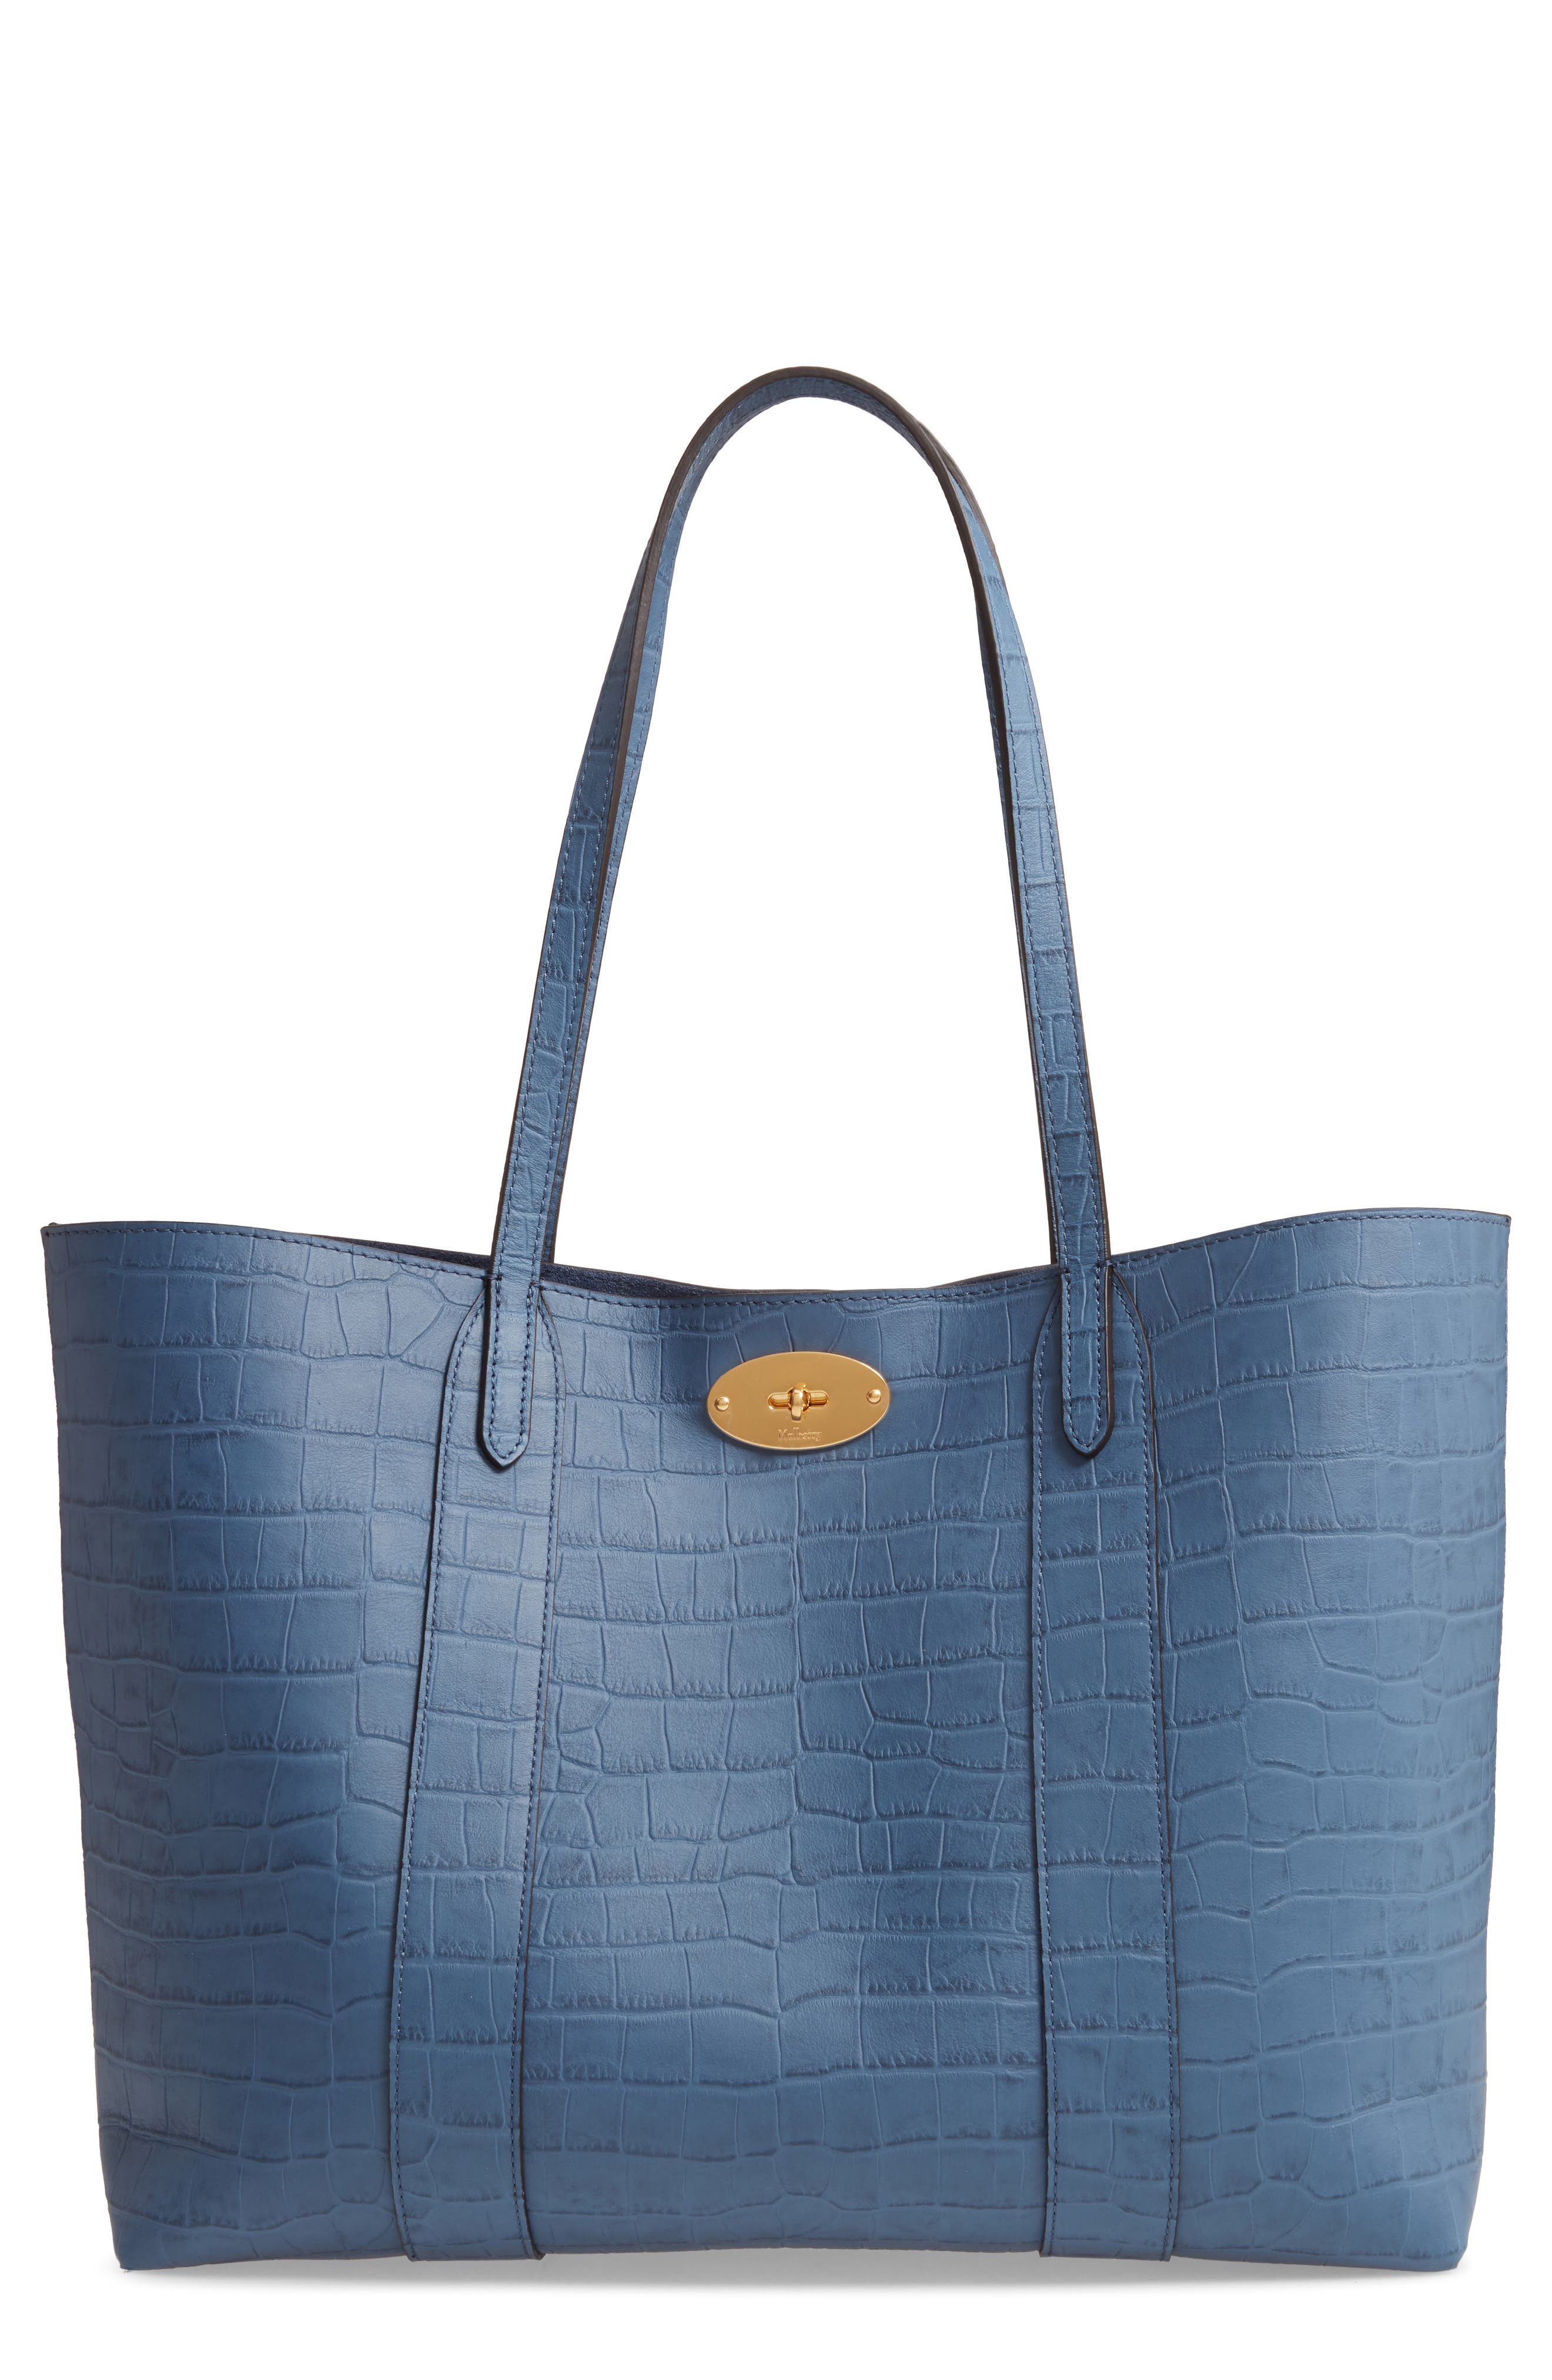 Mulberry Bayswater Matte Croc Embossed Leather Tote & Pouch   Nordstrom